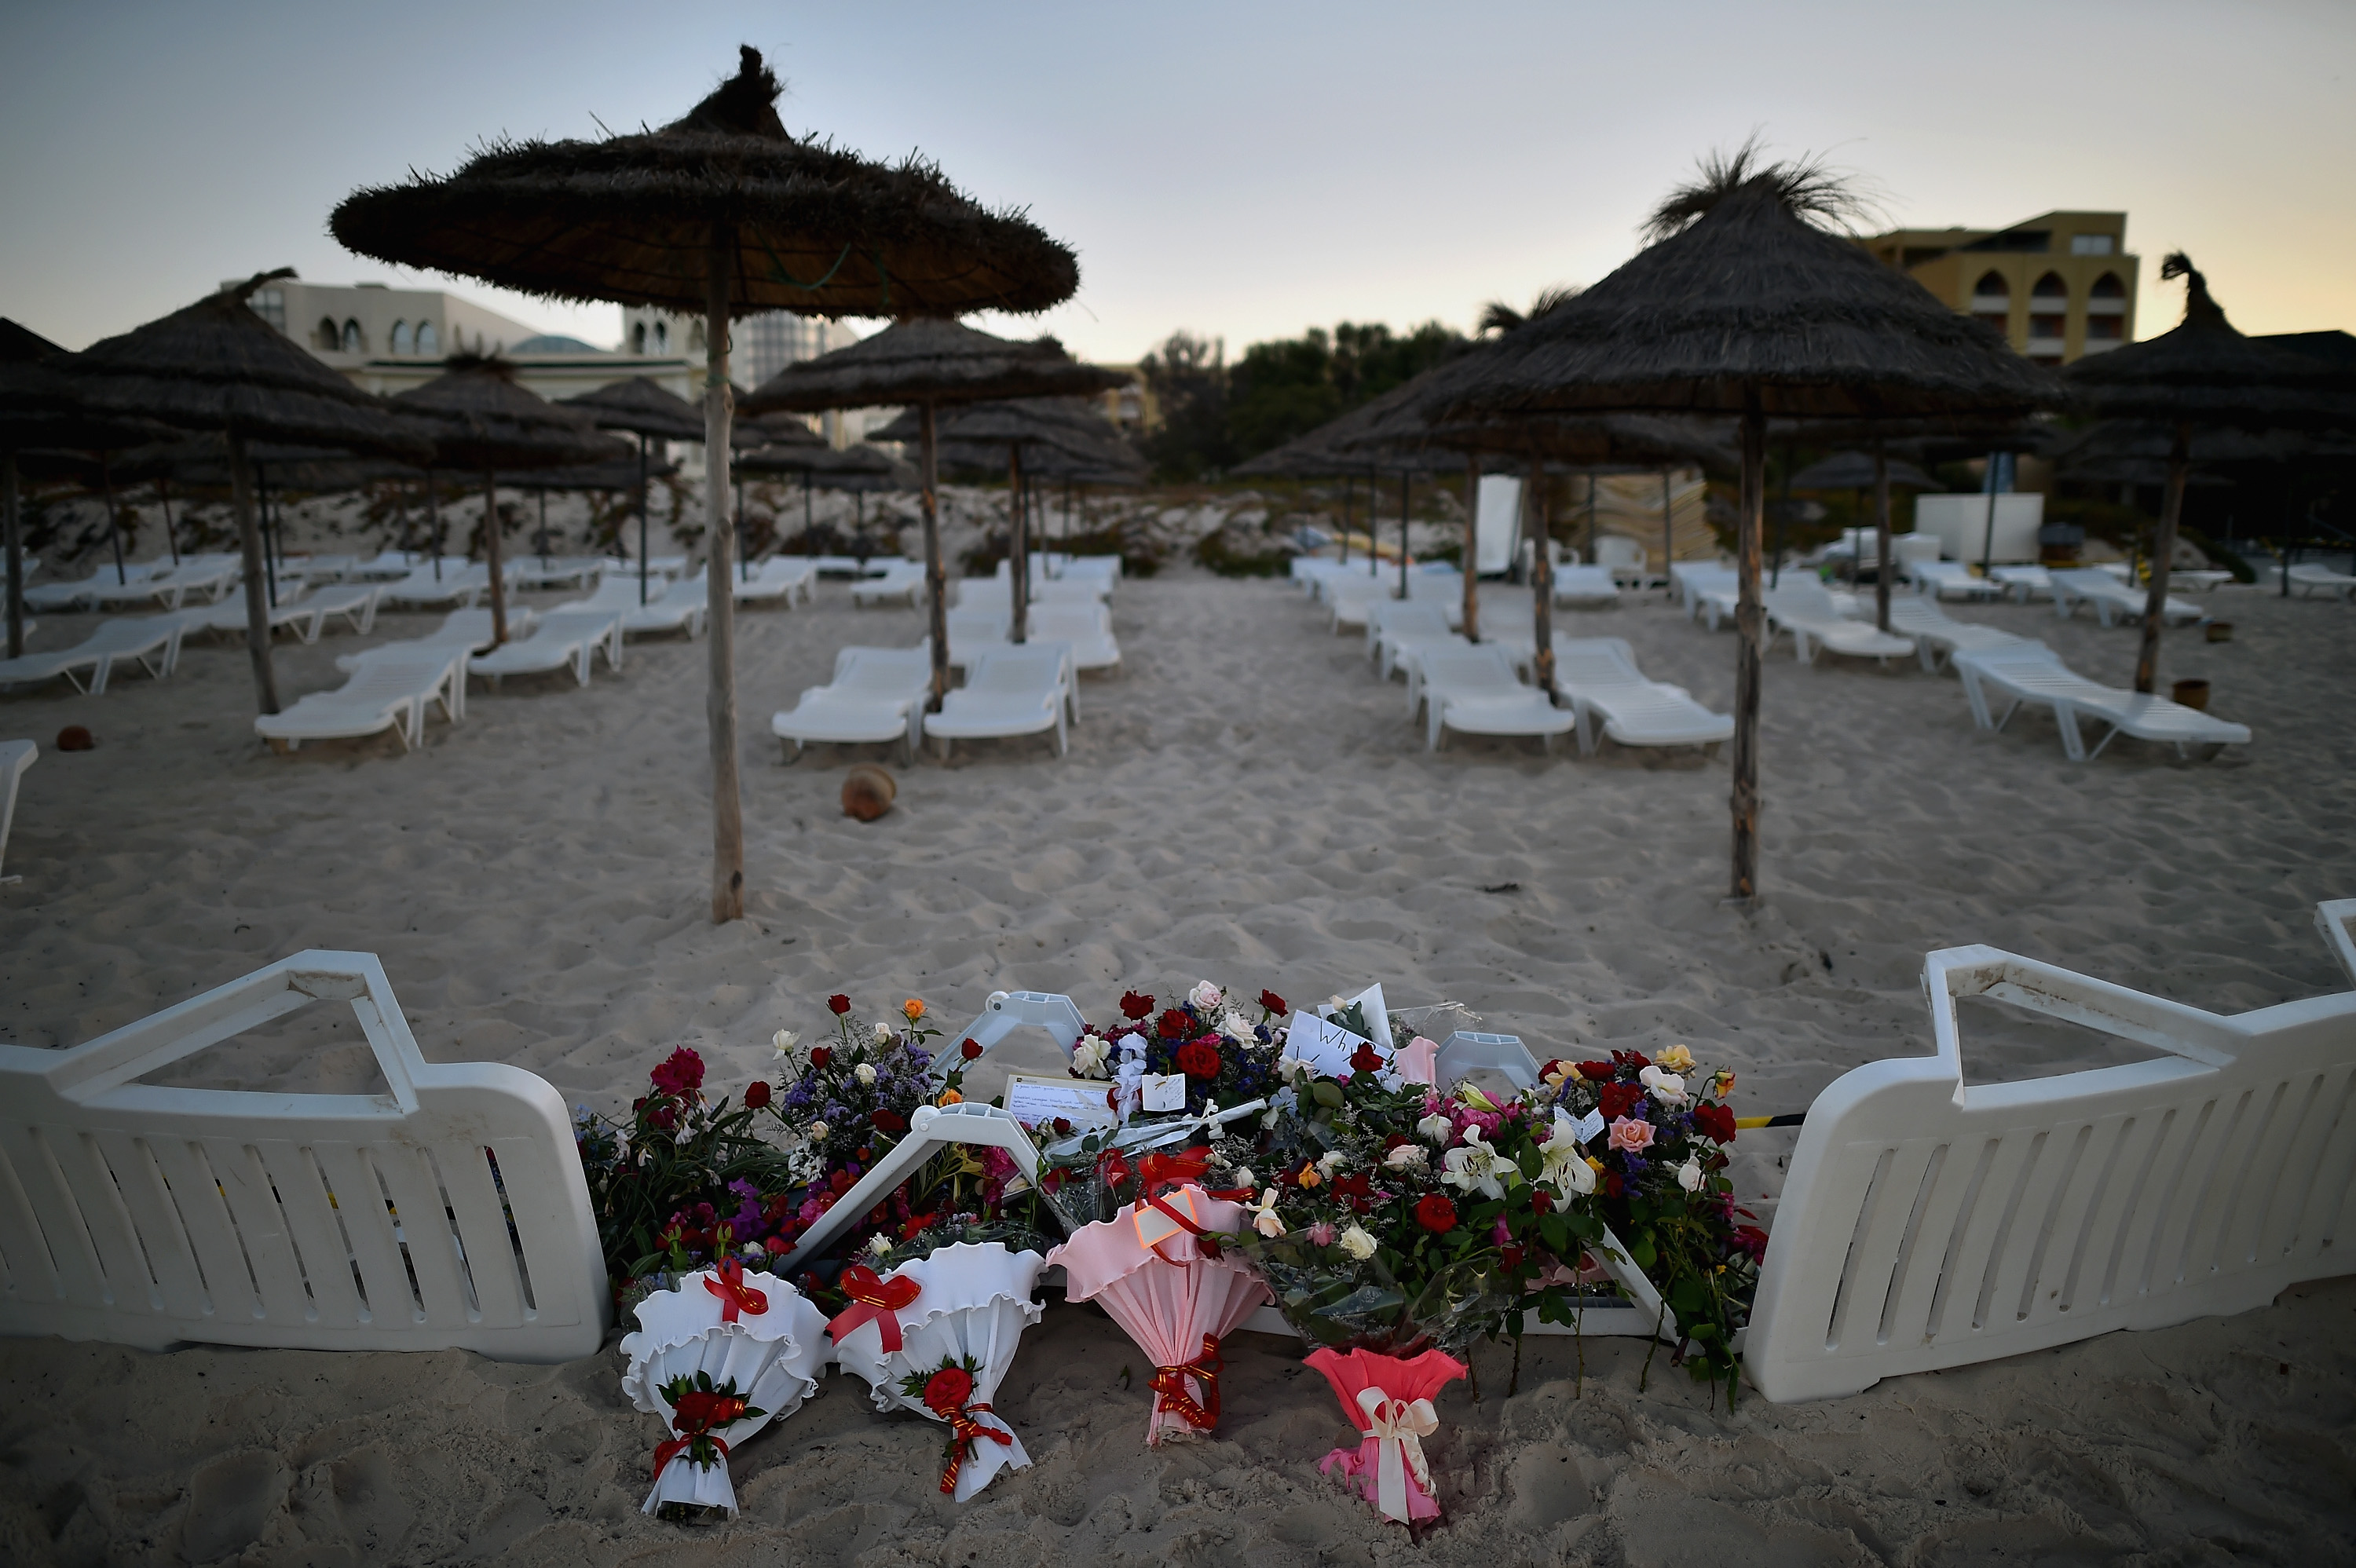 Flowers are placed on June 27, 2015, at the beach next to the Imperial Marhaba Hotel in Sousse, Tunisia, where 38 people were killed in a terrorist attack a day earlier